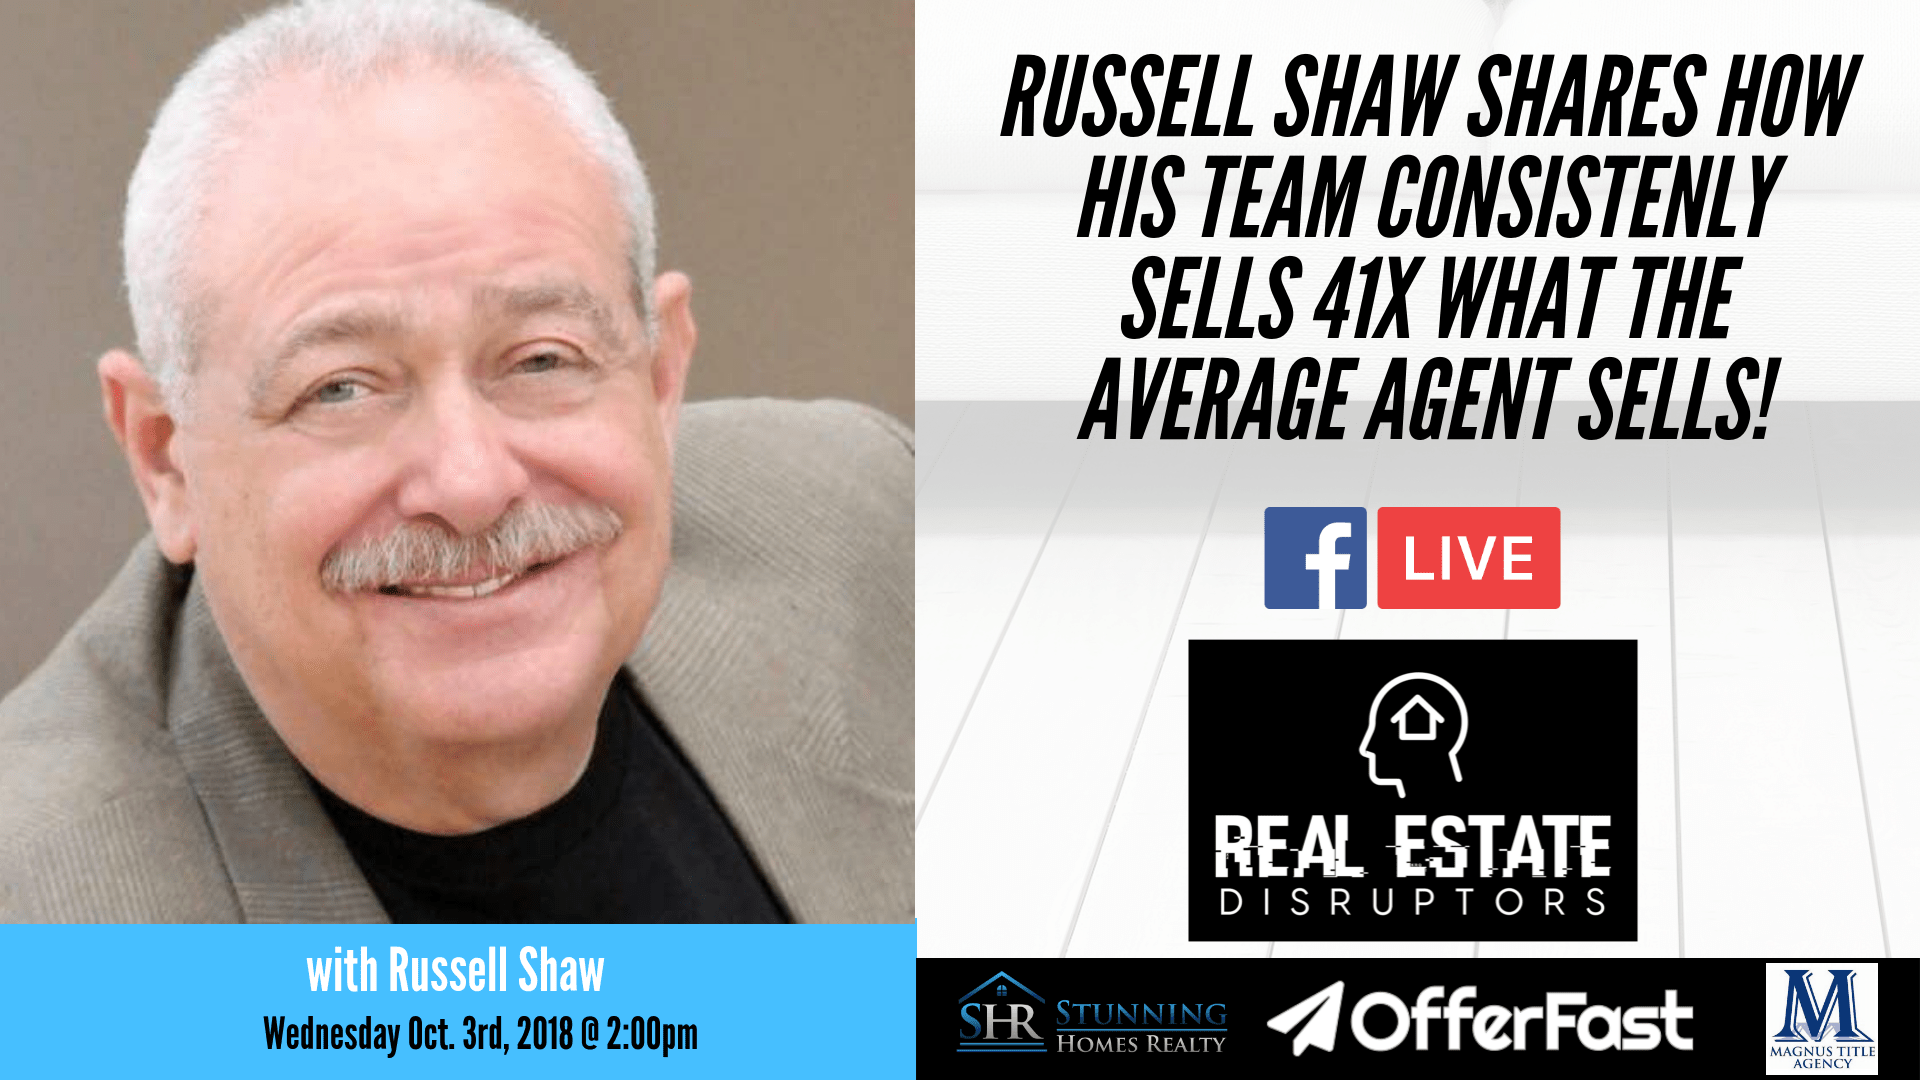 Interview with Russell Shaw